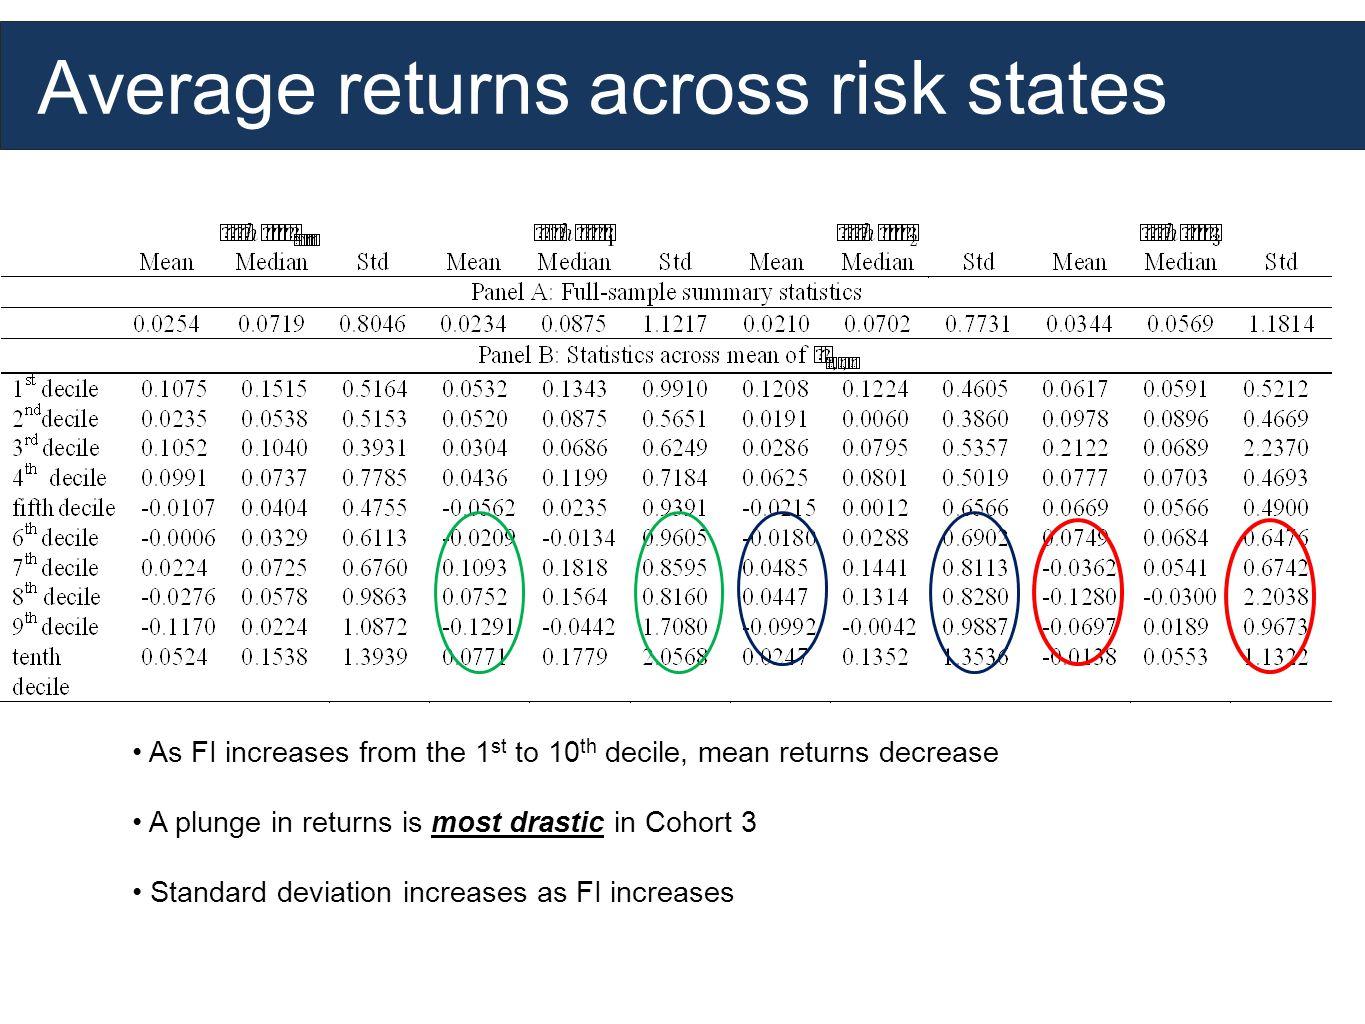 Average returns across risk states As FI increases from the 1 st to 10 th decile, mean returns decrease A plunge in returns is most drastic in Cohort 3 Standard deviation increases as FI increases